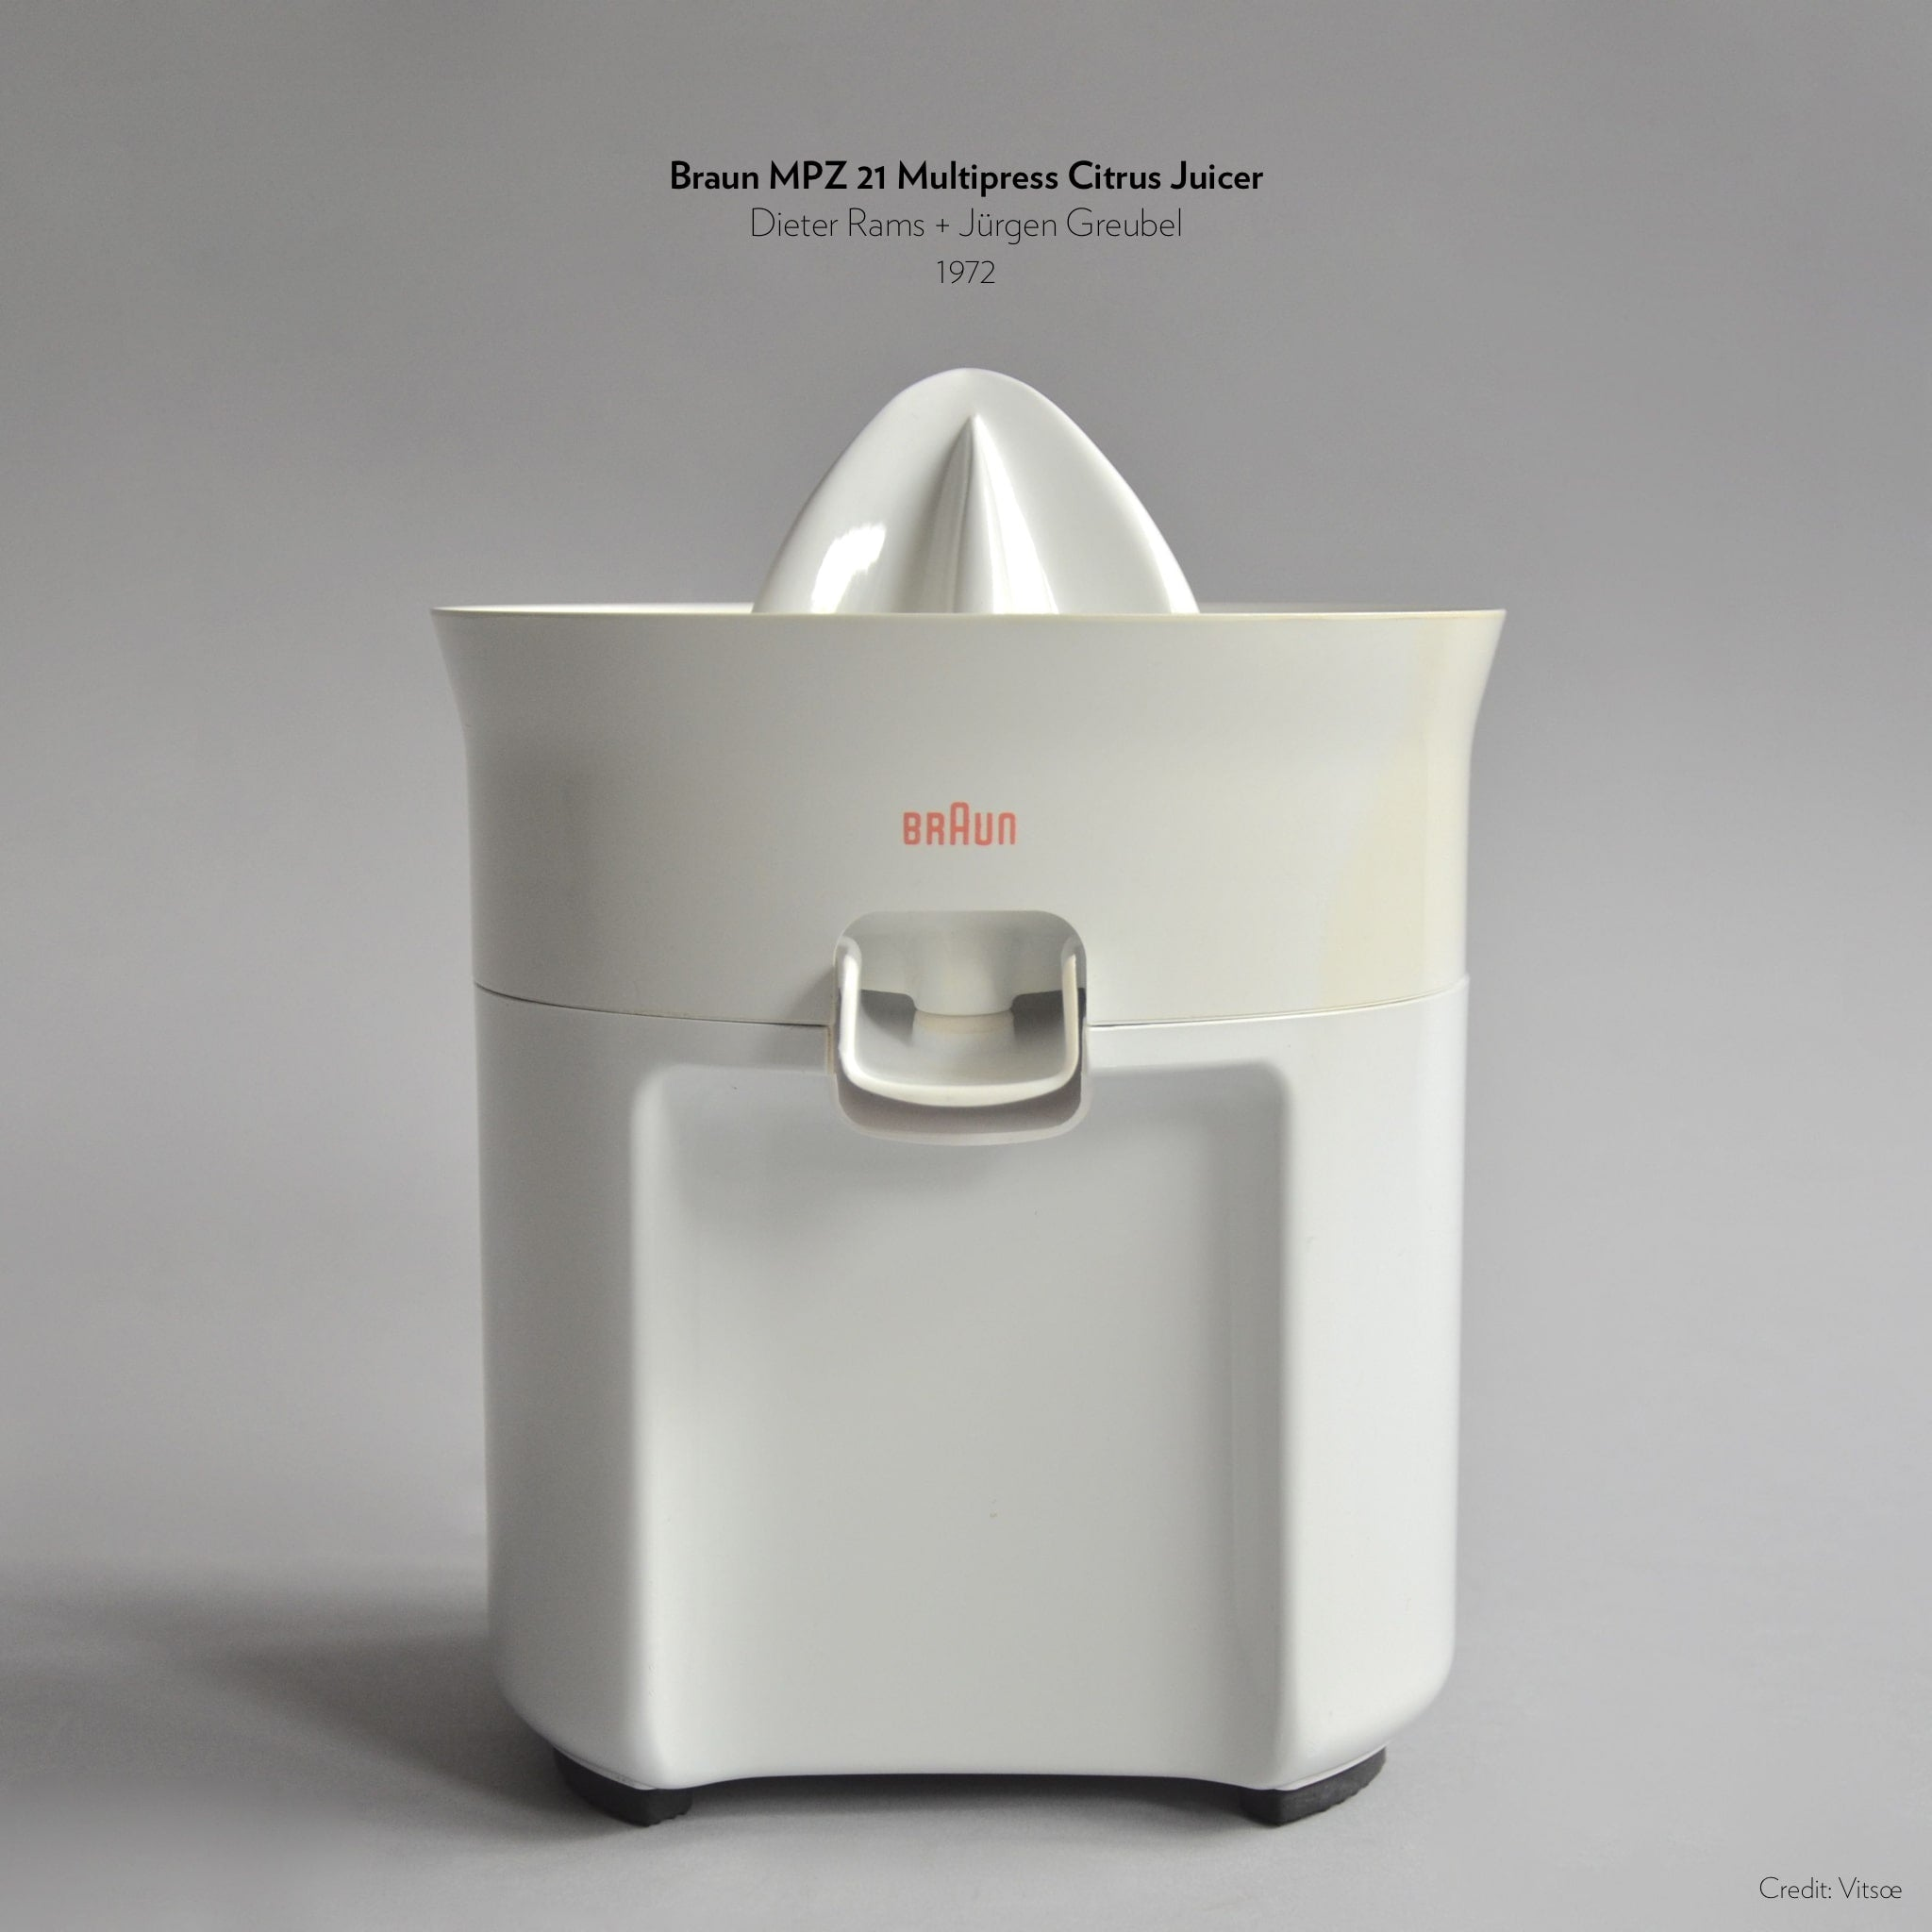 Braun MPZ 21 Multipress Citrus Juicer designed by Dieter Rams and Jurgen Greubel in 1972.